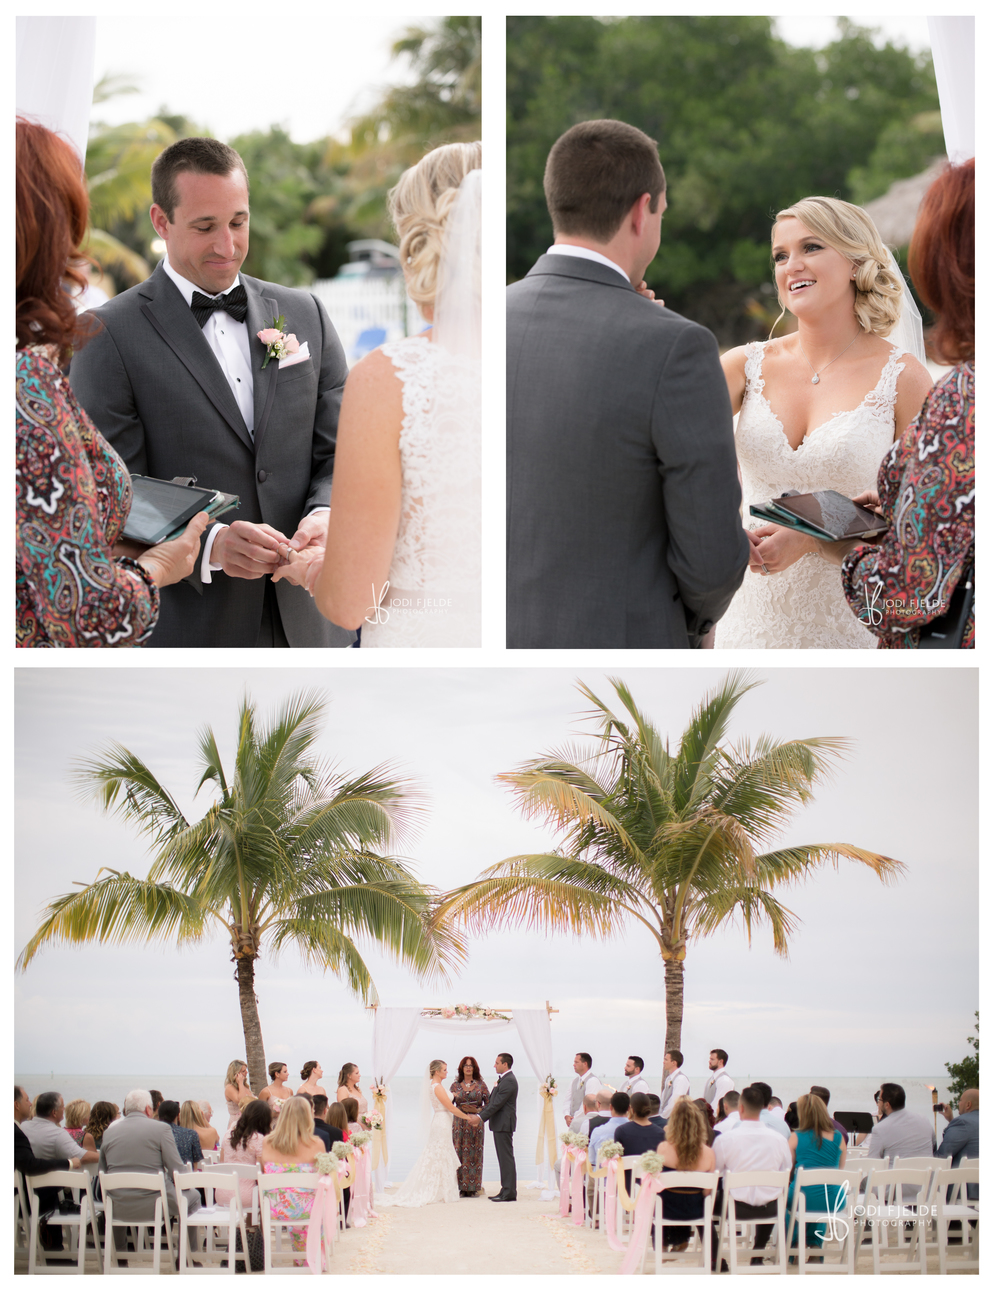 Cocconut_Cove_&_ Marina_ wedding_Kalie_and_Kurt 28.jpg